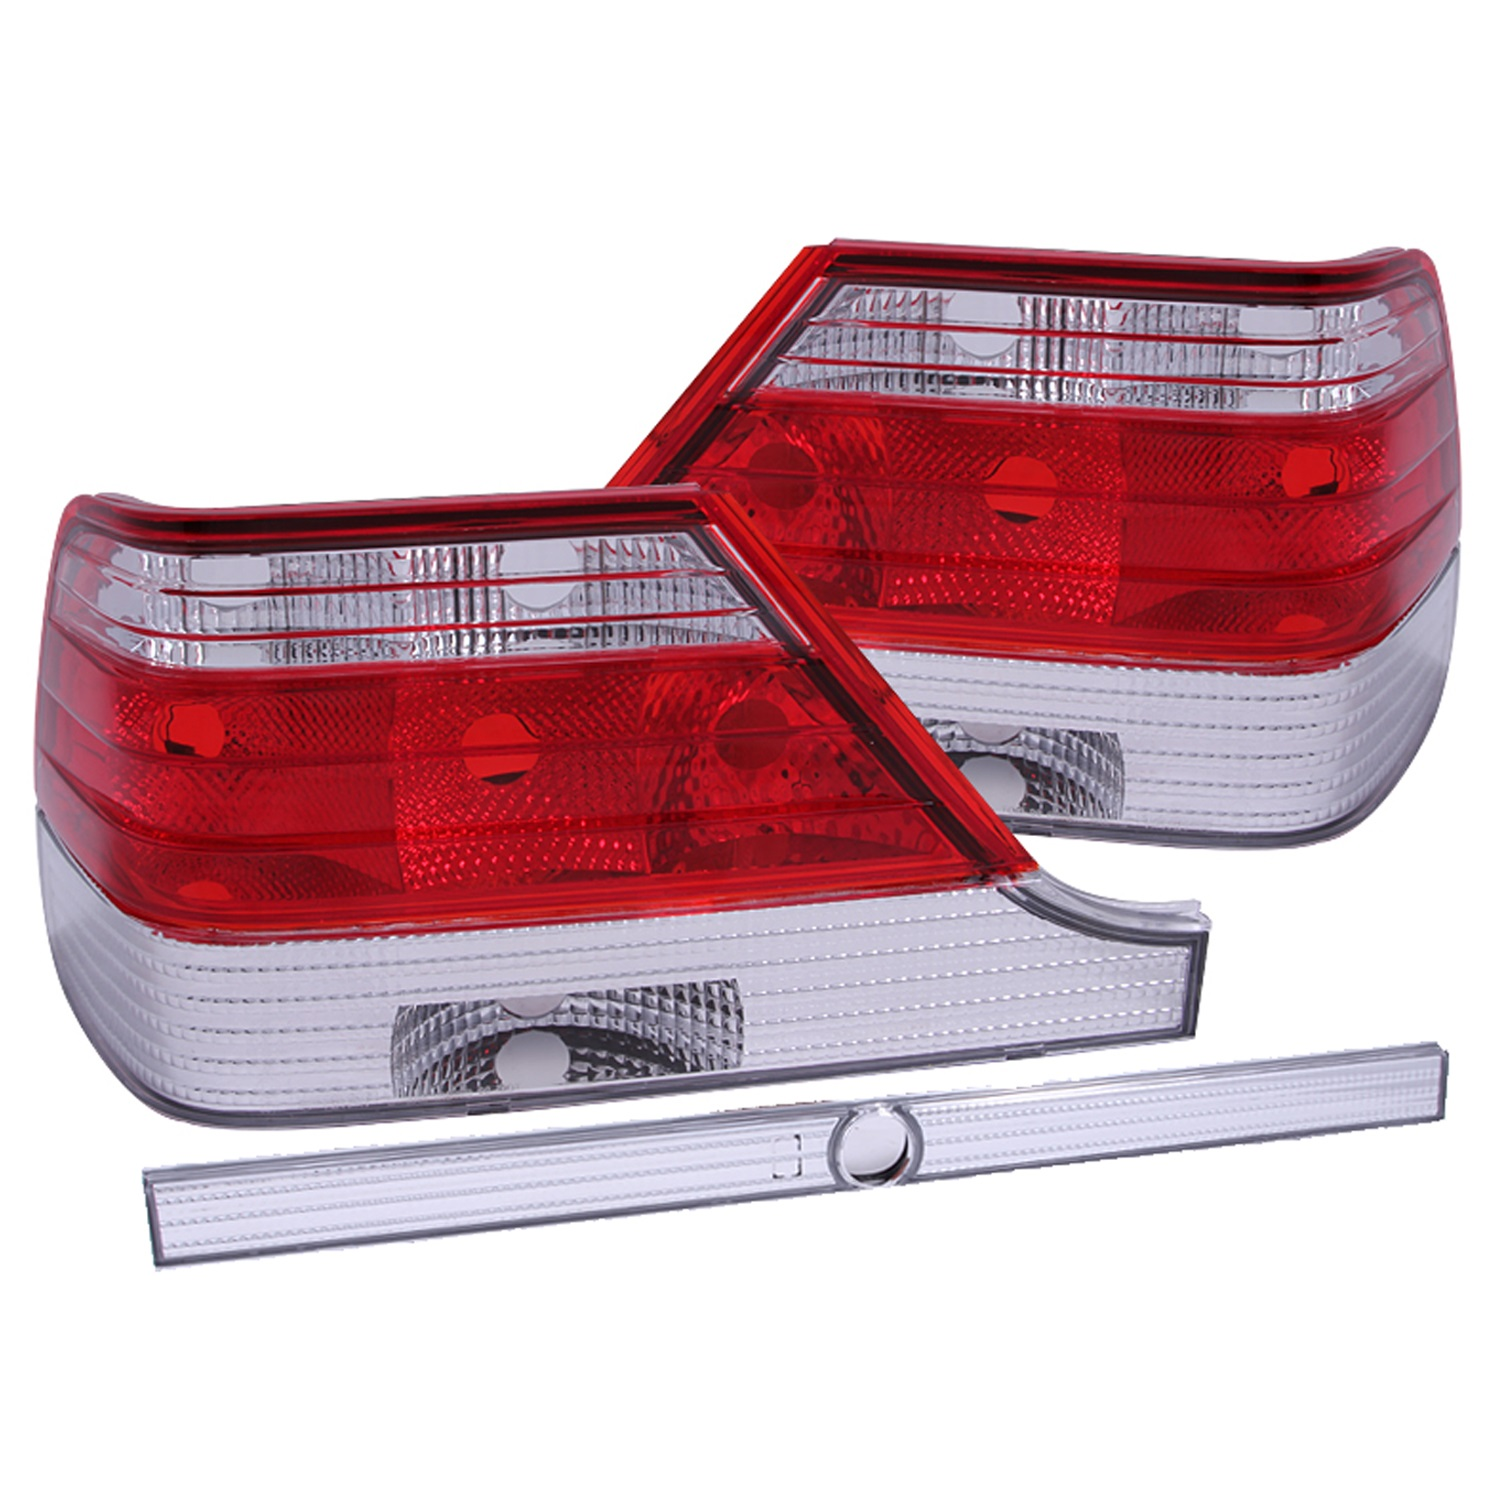 Anzo USA 221153 Tail Light Assembly Fits 97-99 S320 S420 S500 S600